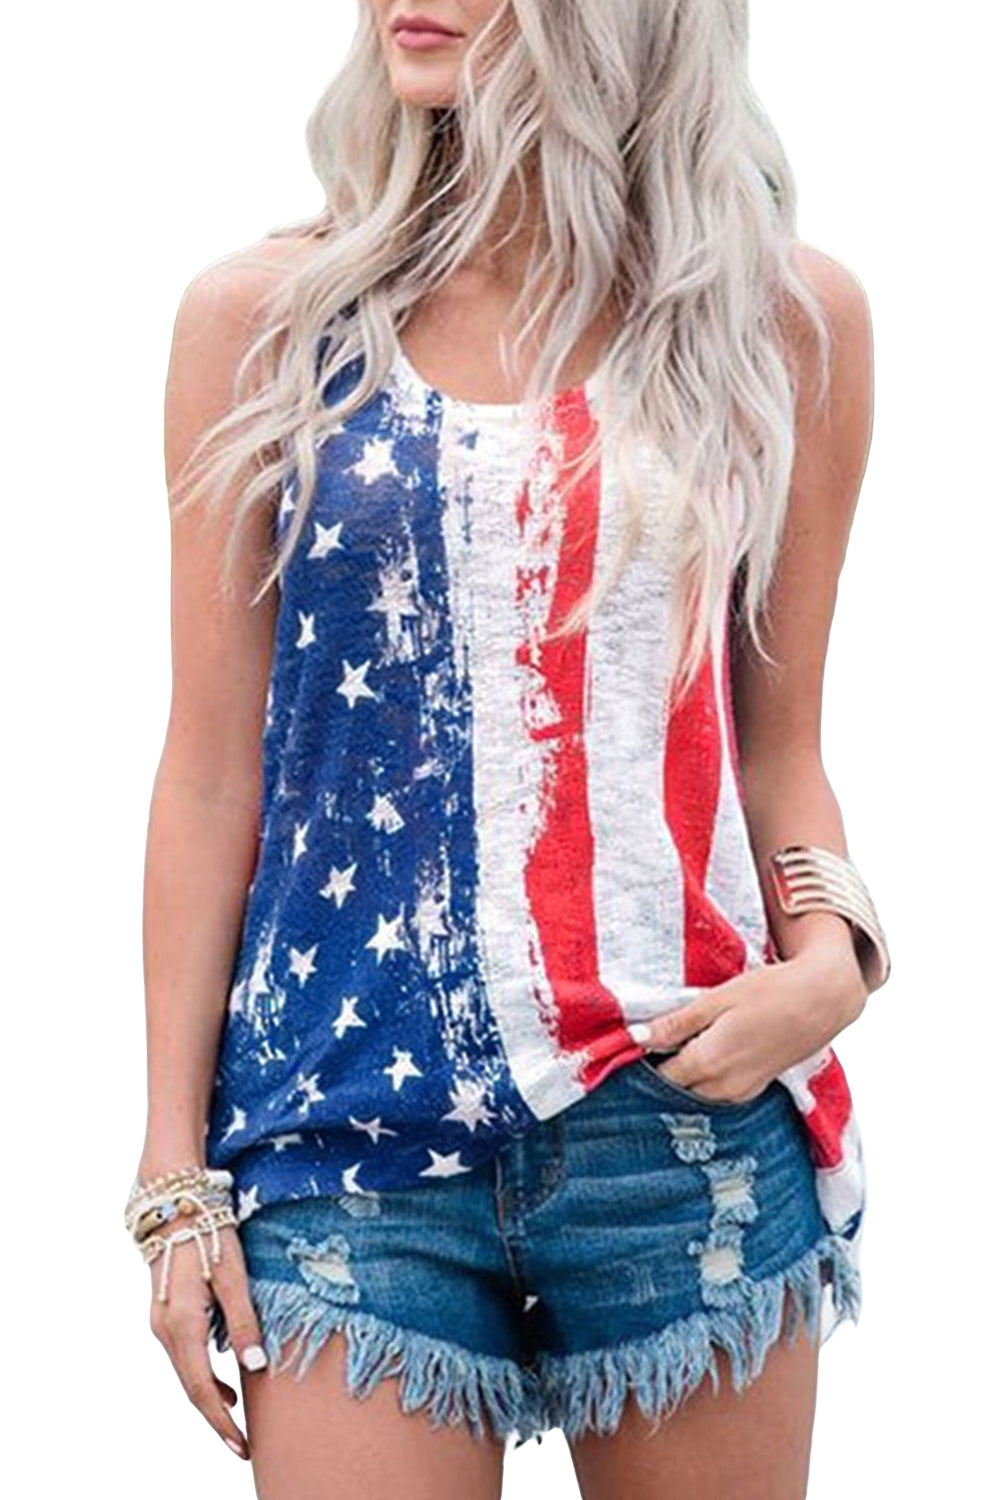 Stripes Star American Flag Print Tank Top    Small to 2 XL